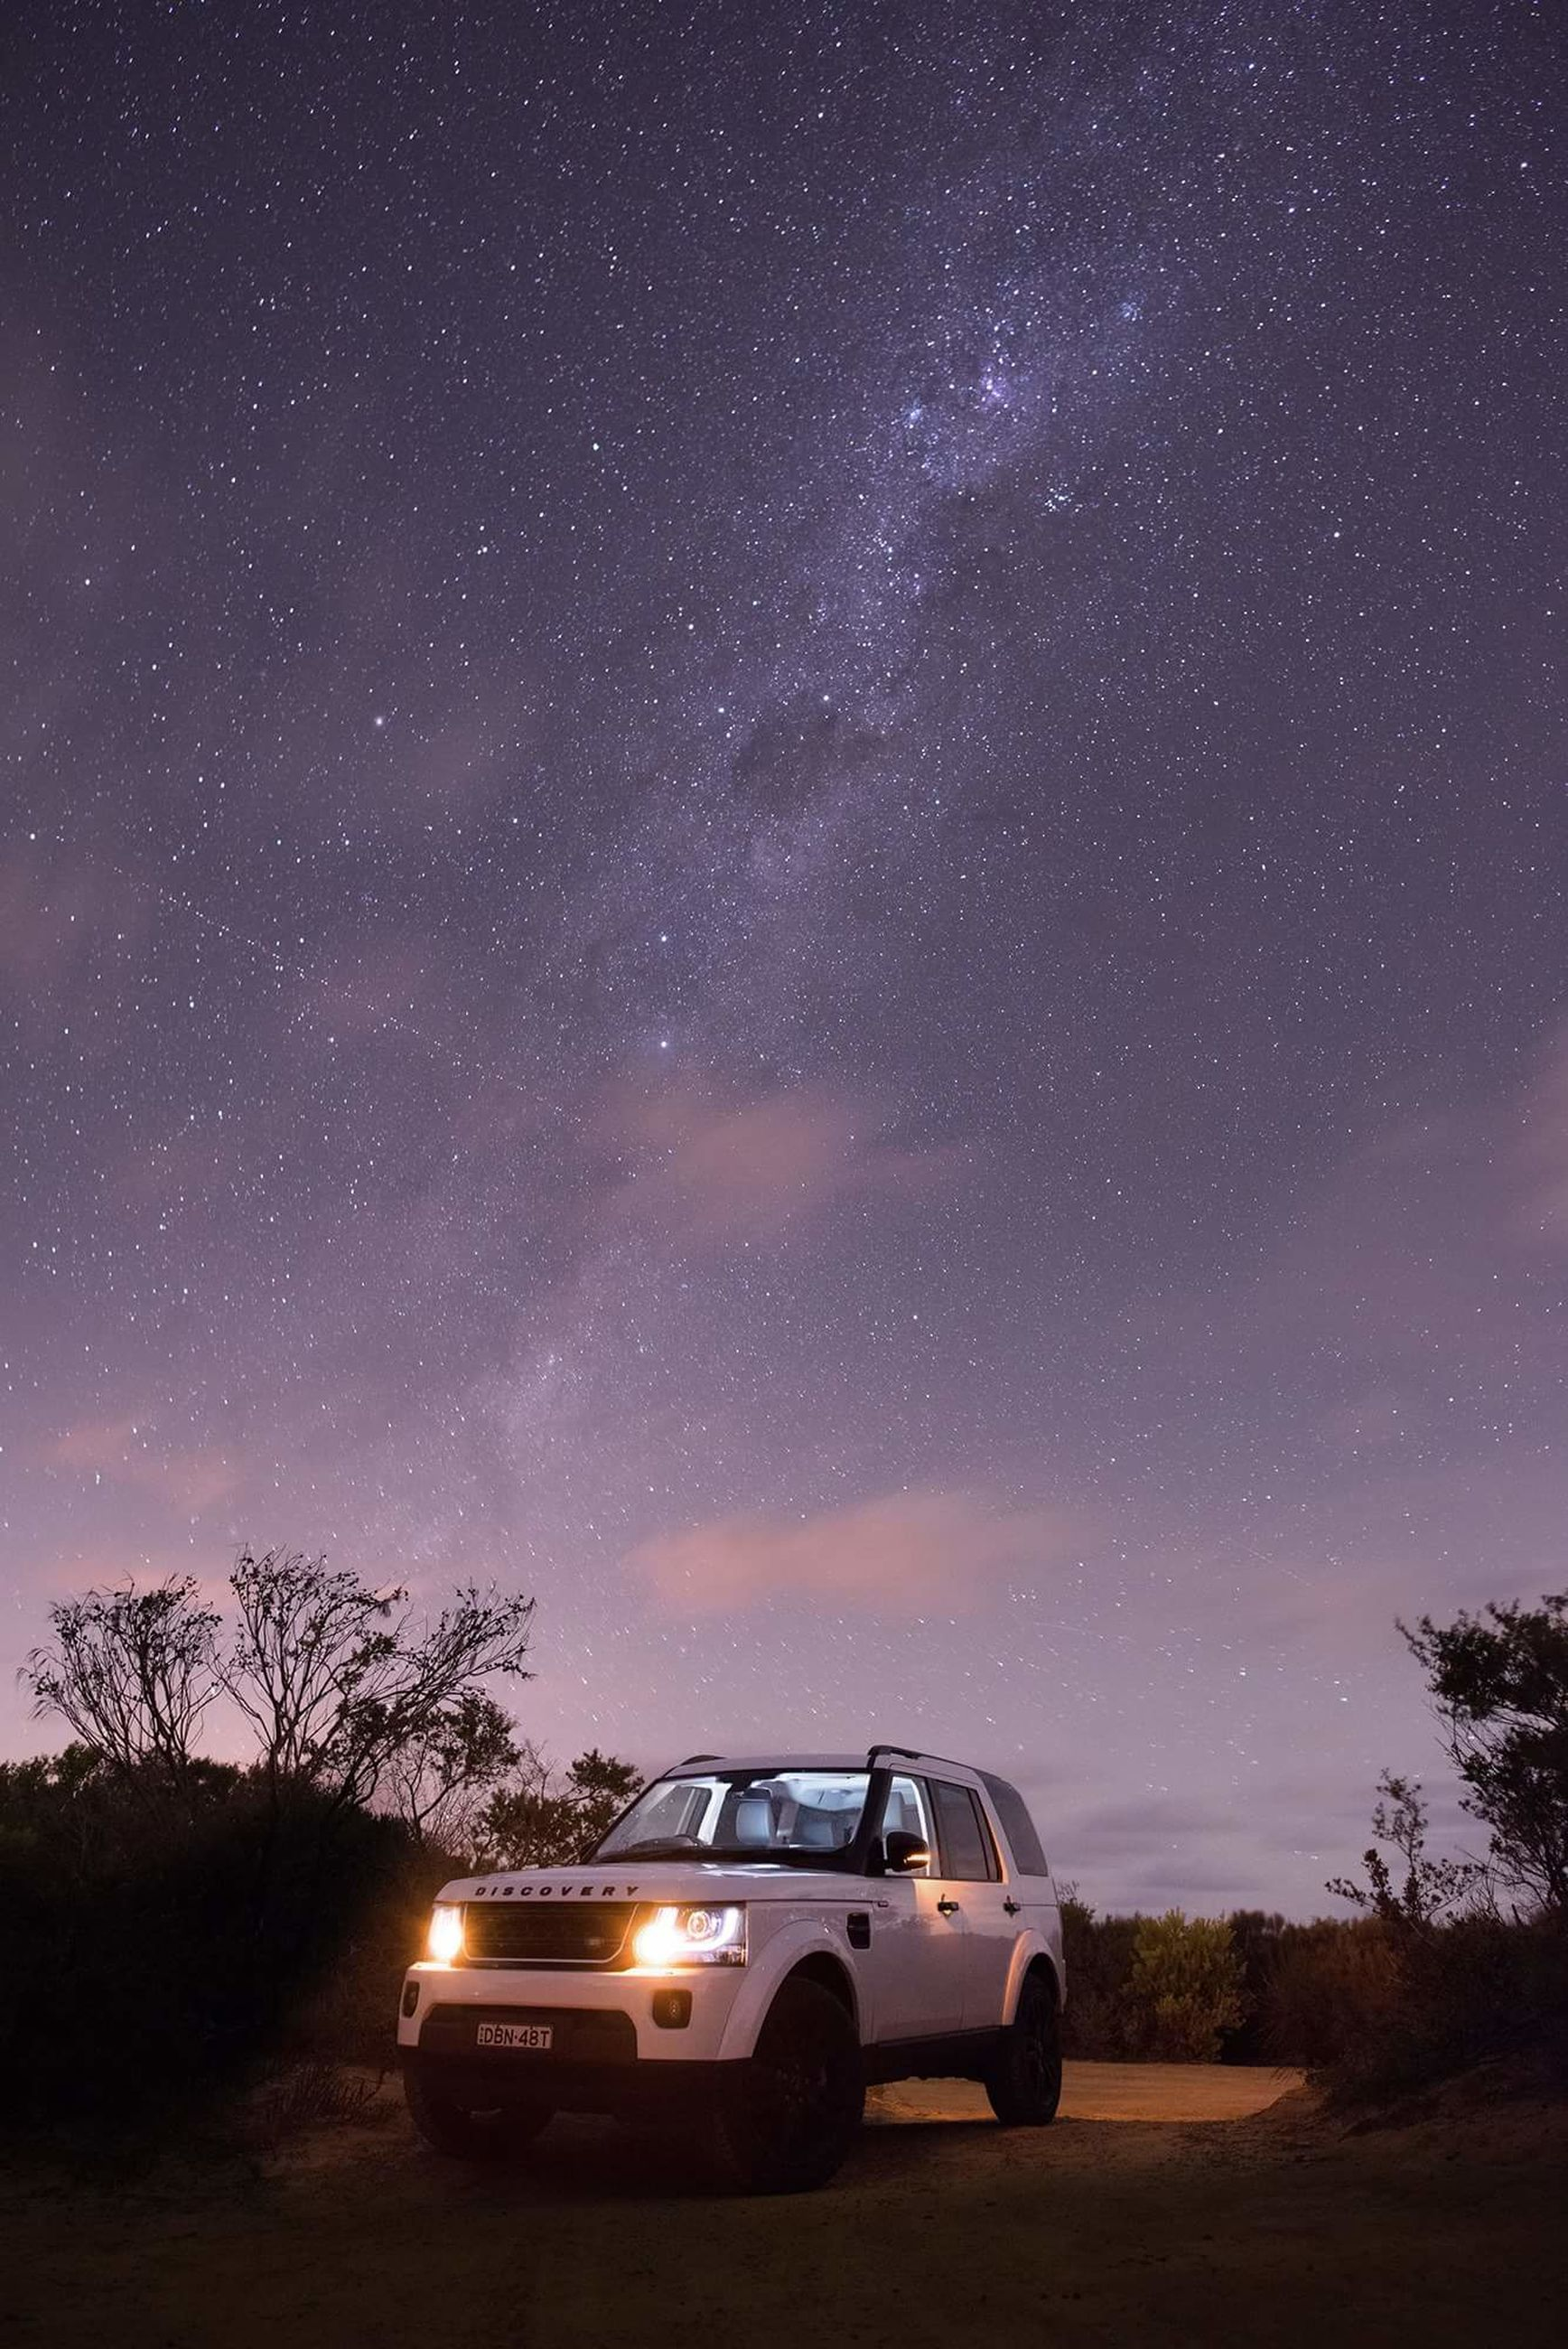 night, star - space, star field, tree, sky, astronomy, star, galaxy, scenics, transportation, constellation, tranquil scene, car, milky way, beauty in nature, space, nature, landscape, tranquility, low angle view